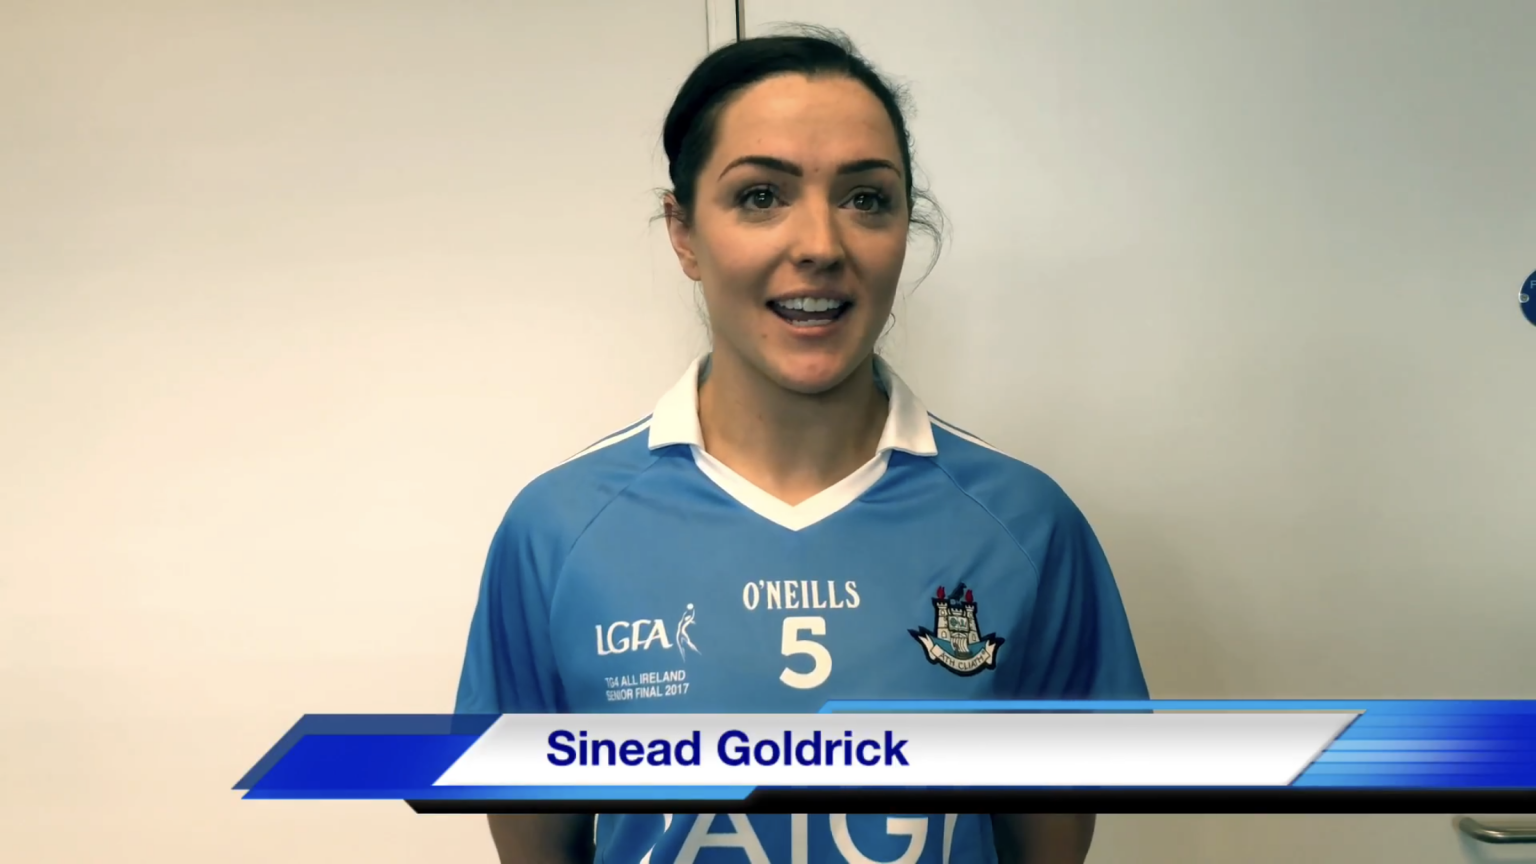 EXCLUSIVE INTERVIEW WITH DUBLIN'S ALL IRELAND AND MULTIPLE ALL STAR WINNER SINEAD GOLDRICK